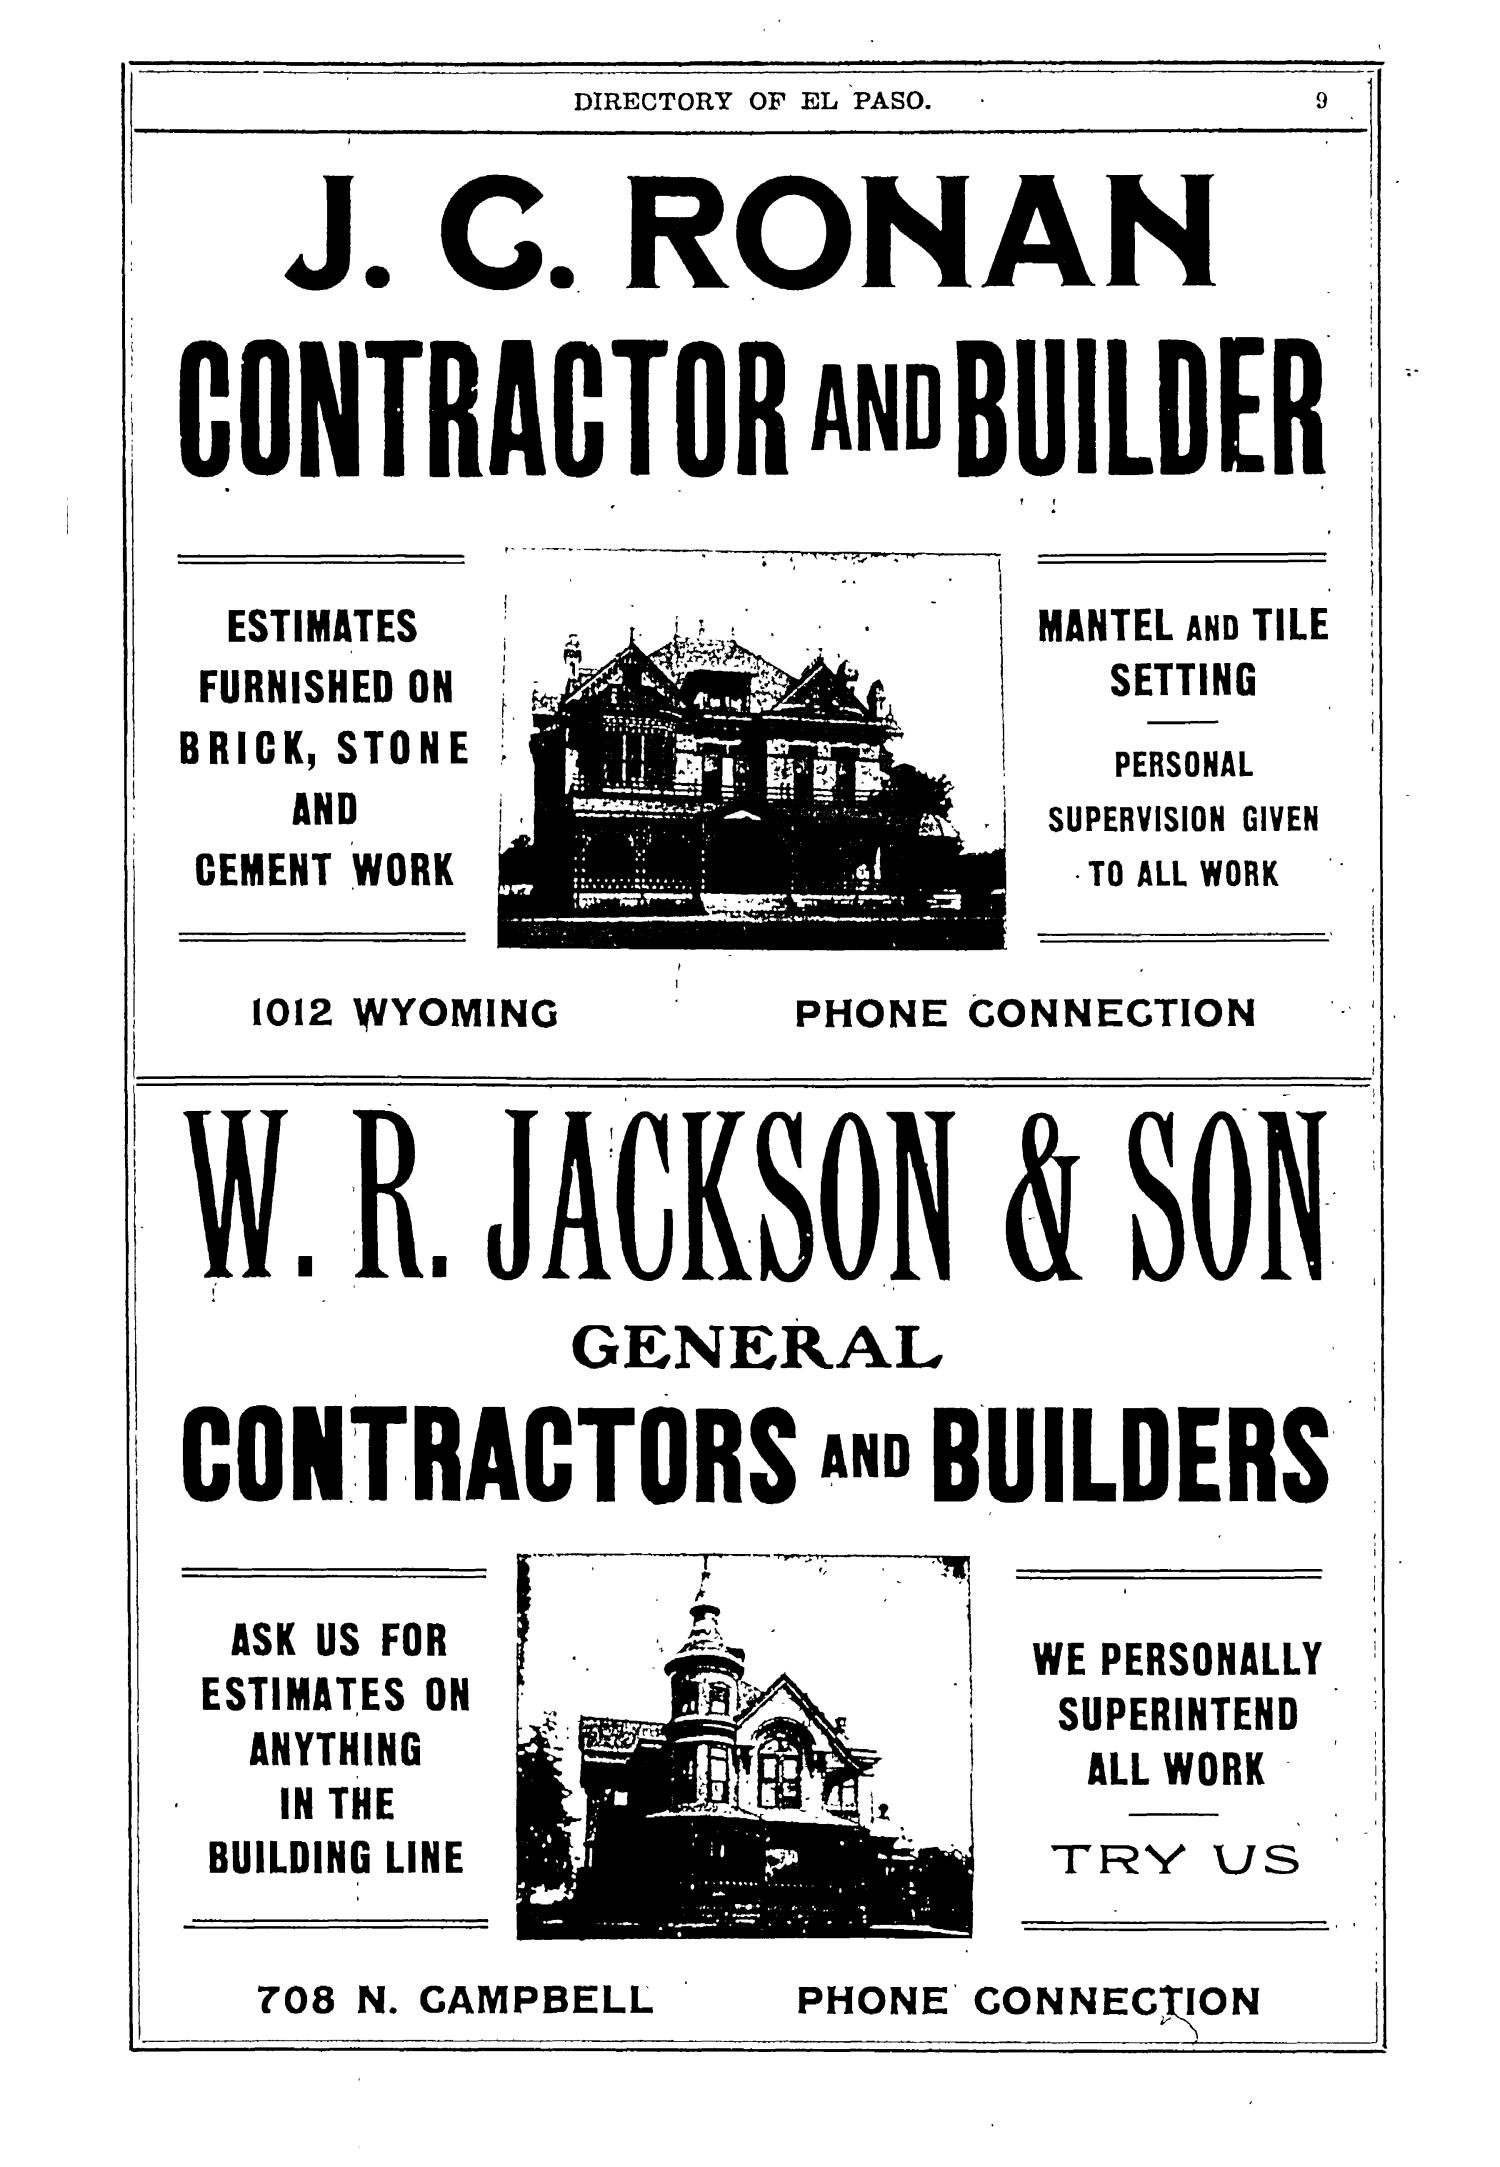 John F. Worley & Co.'s El Paso Directory for 1906                                                                                                      9